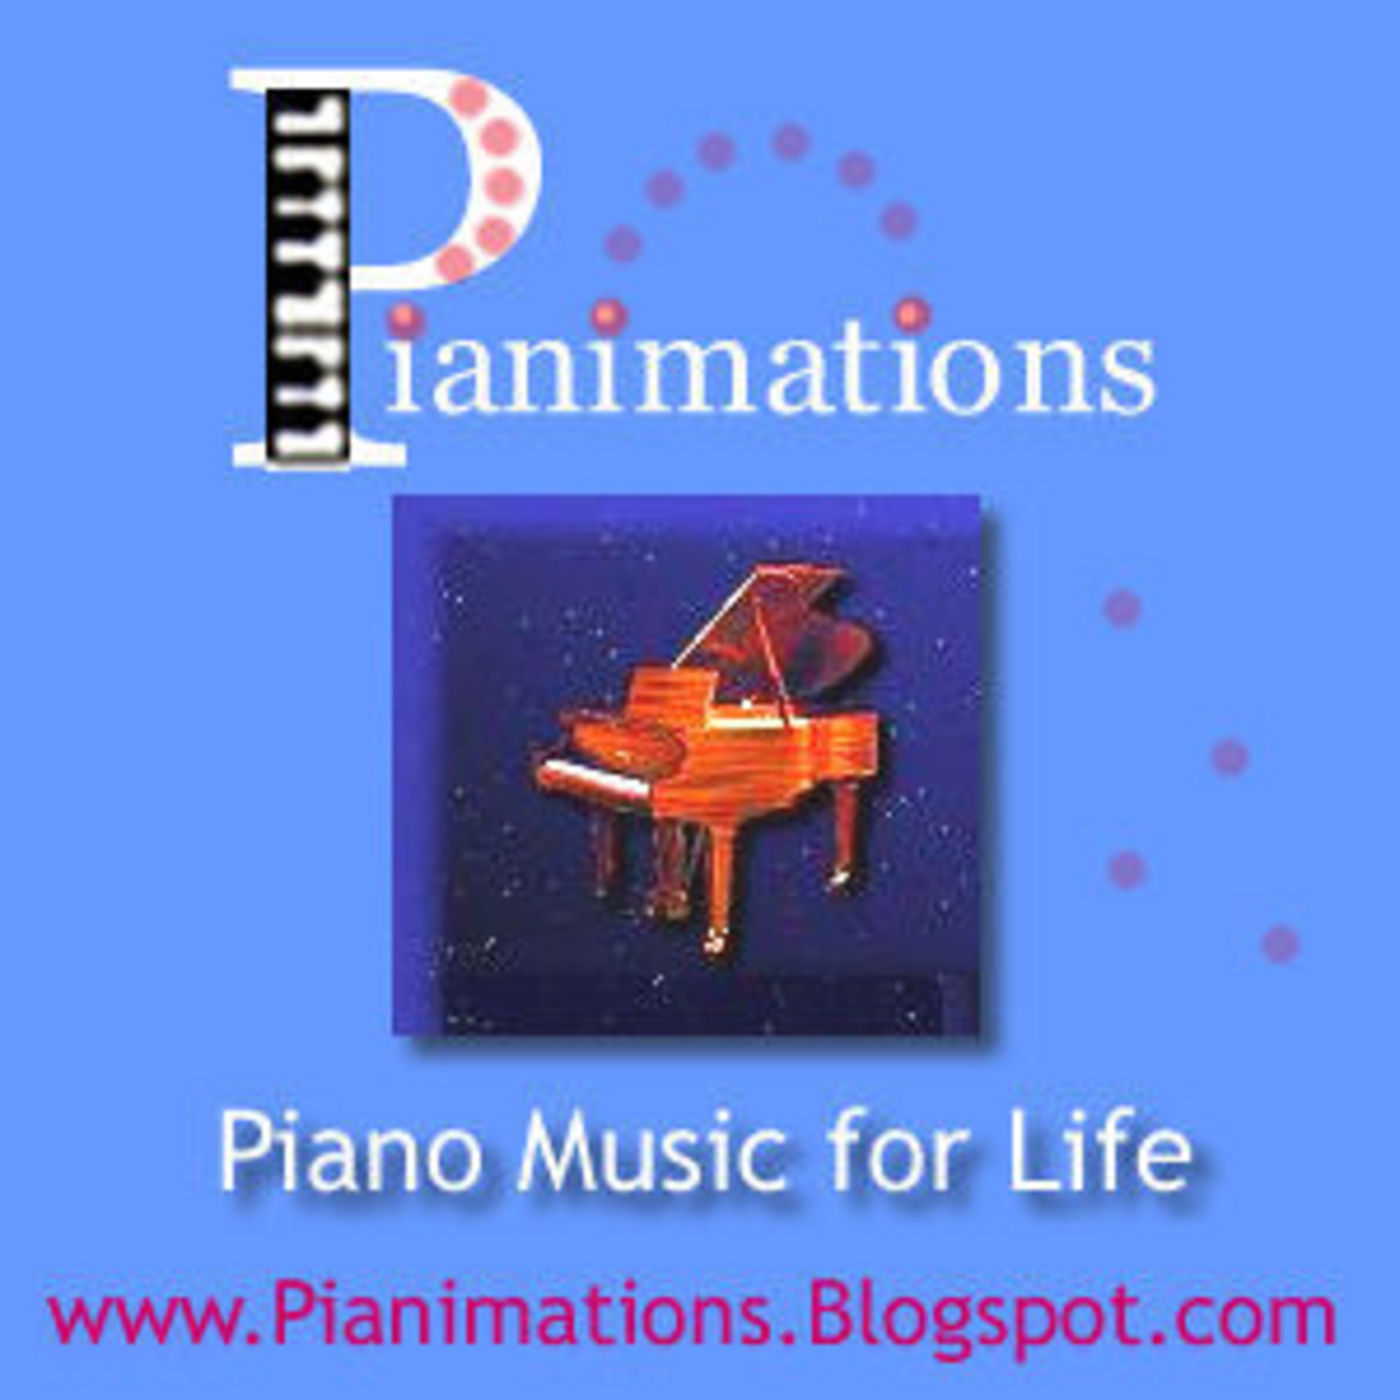 <![CDATA[PIANIMATIONS - Piano Music for Life]]>